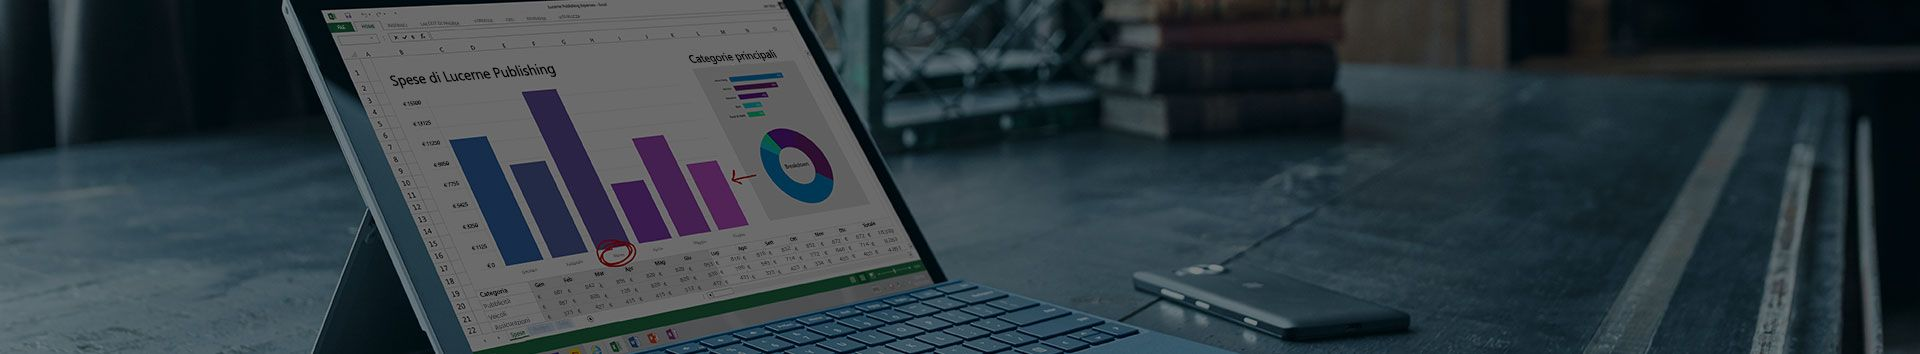 Tablet Microsoft Surface che visualizza una nota spese in Microsoft Excel